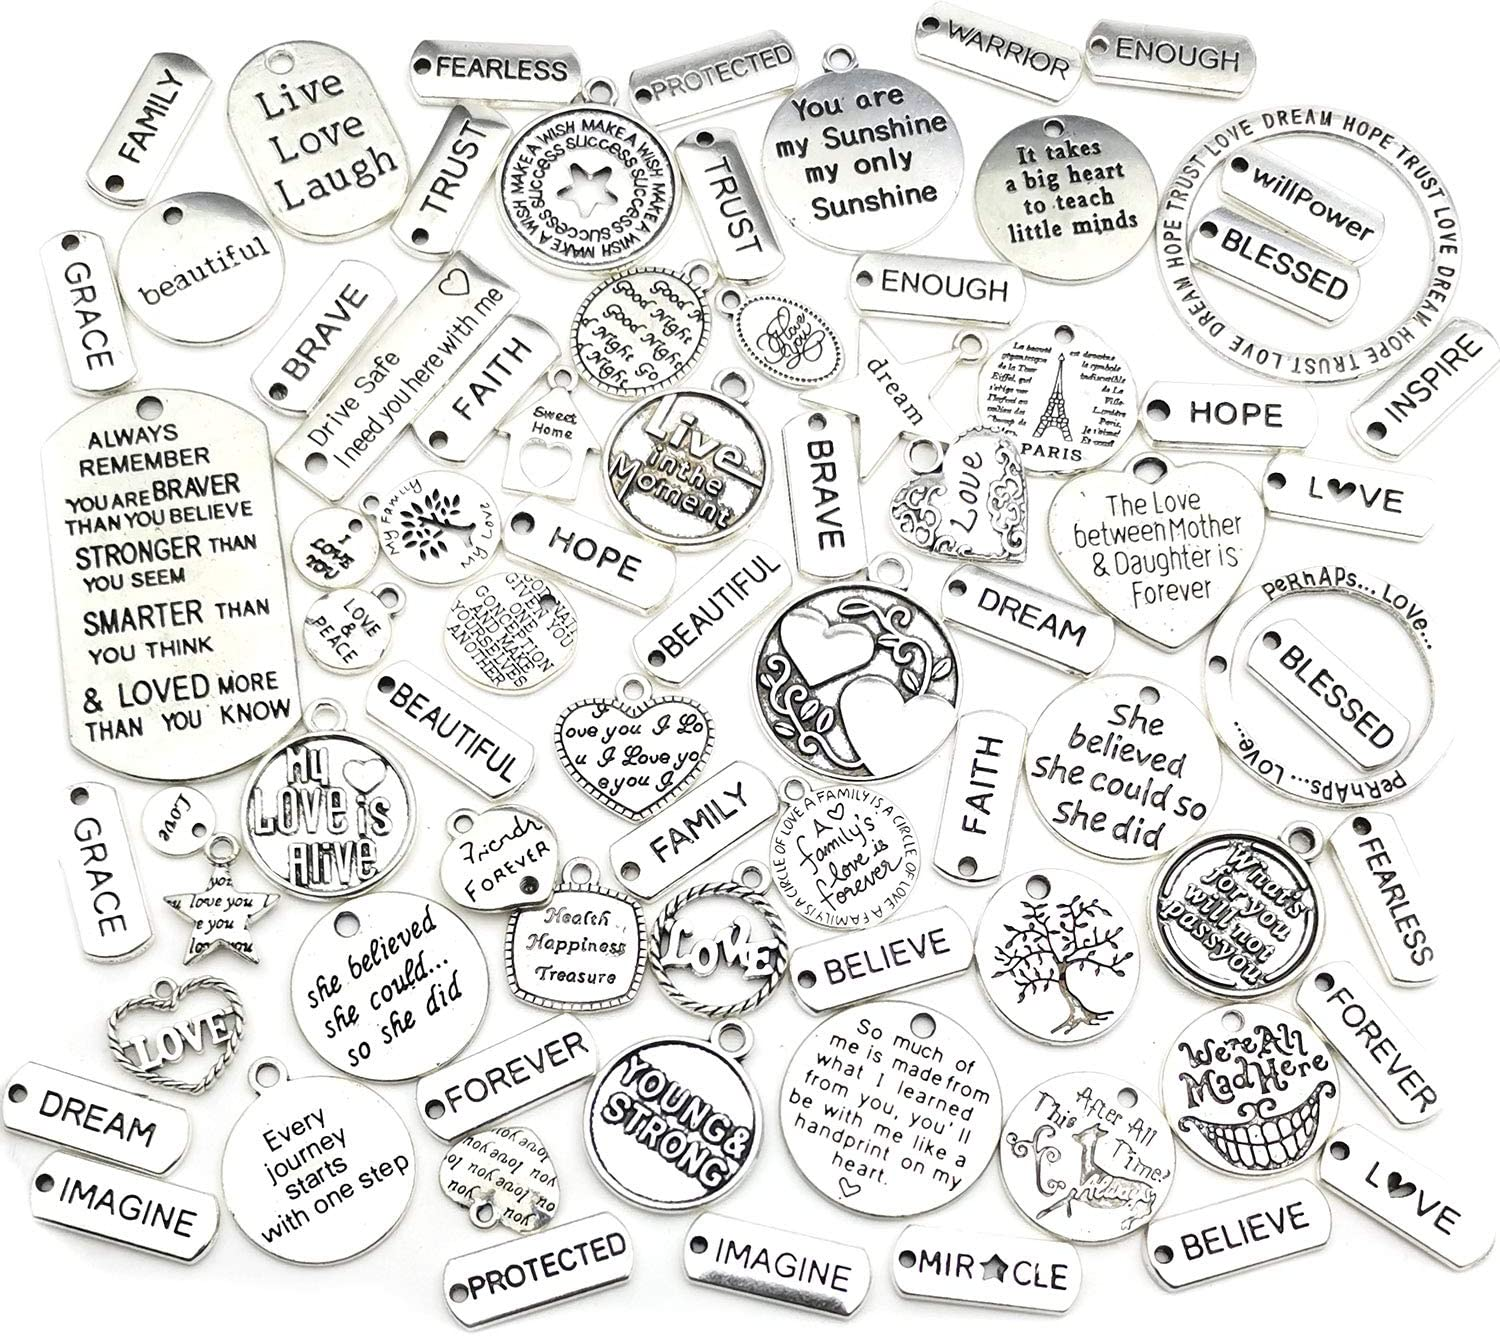 WOCRAFT 110pcs Inspiration Words Charms Craft Supplies Beads Charms Pendants for Jewelry Making Crafting Findings Accessory for DIY Necklace Bracelet (M375)